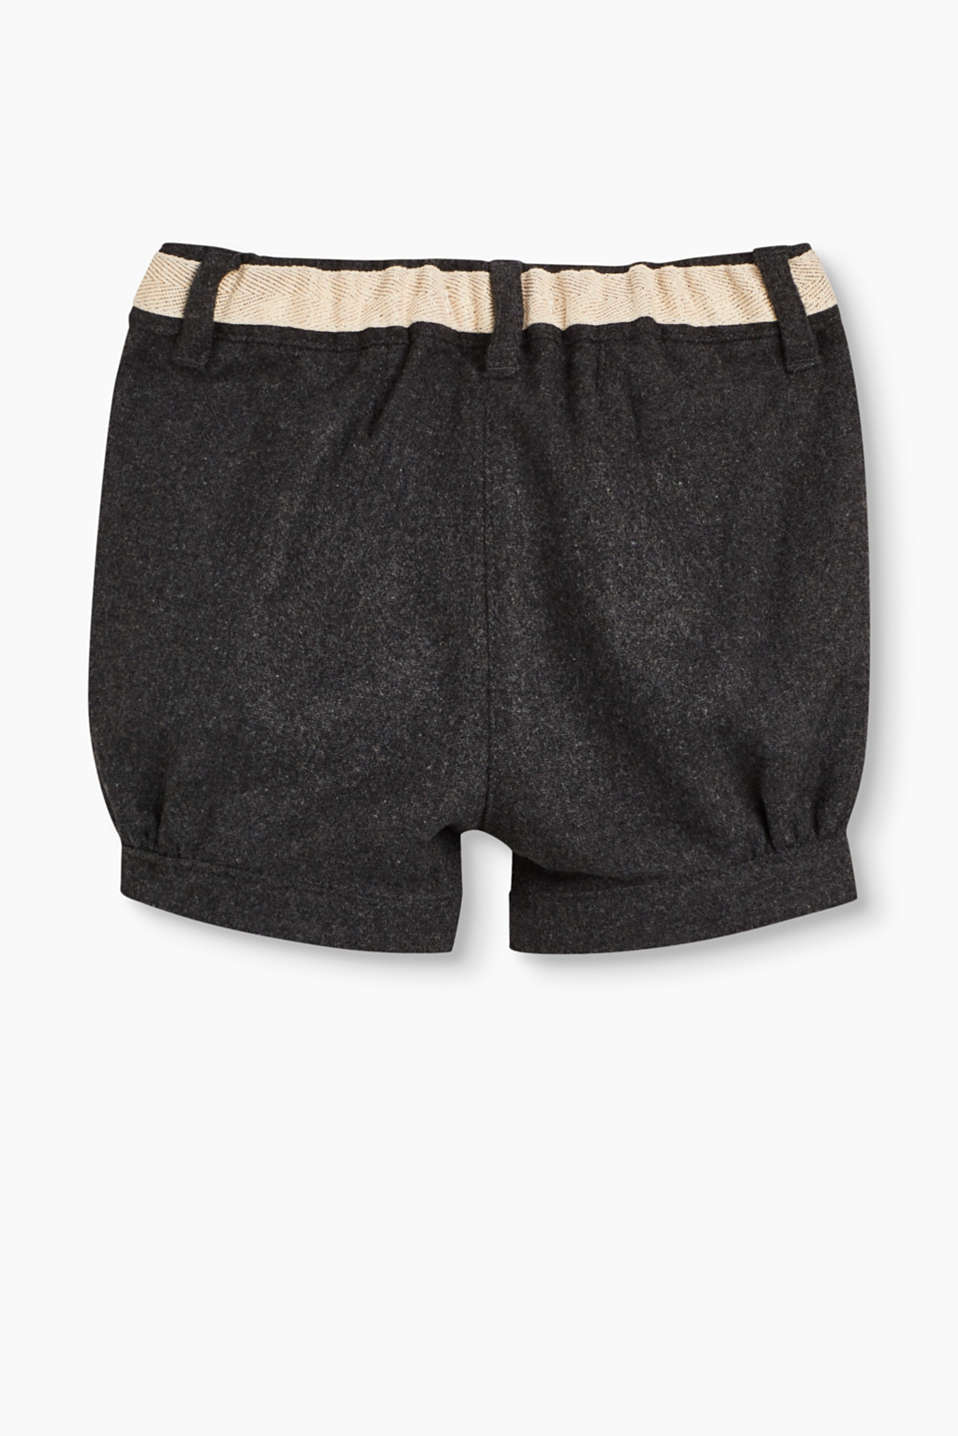 Winter shorts with a decorative bow